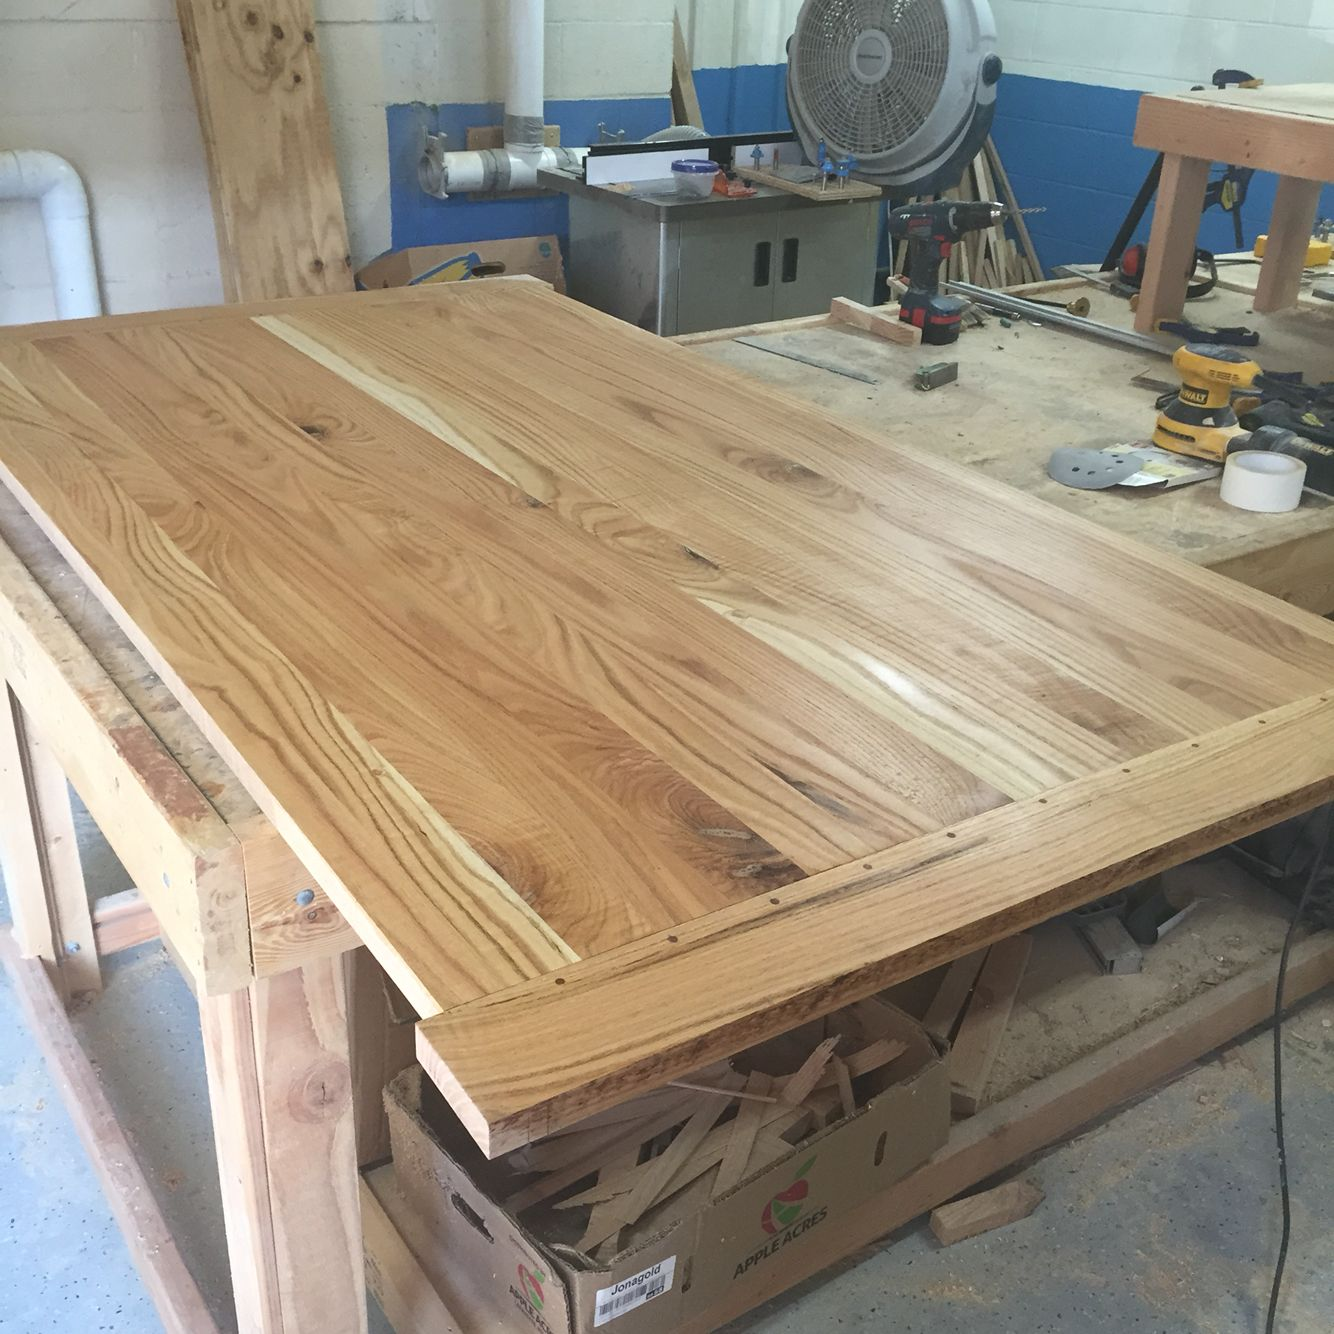 The 42 X 76 Red Oak Farmhouse Table Top Is Fully Assembled. Now Itu0027s Time